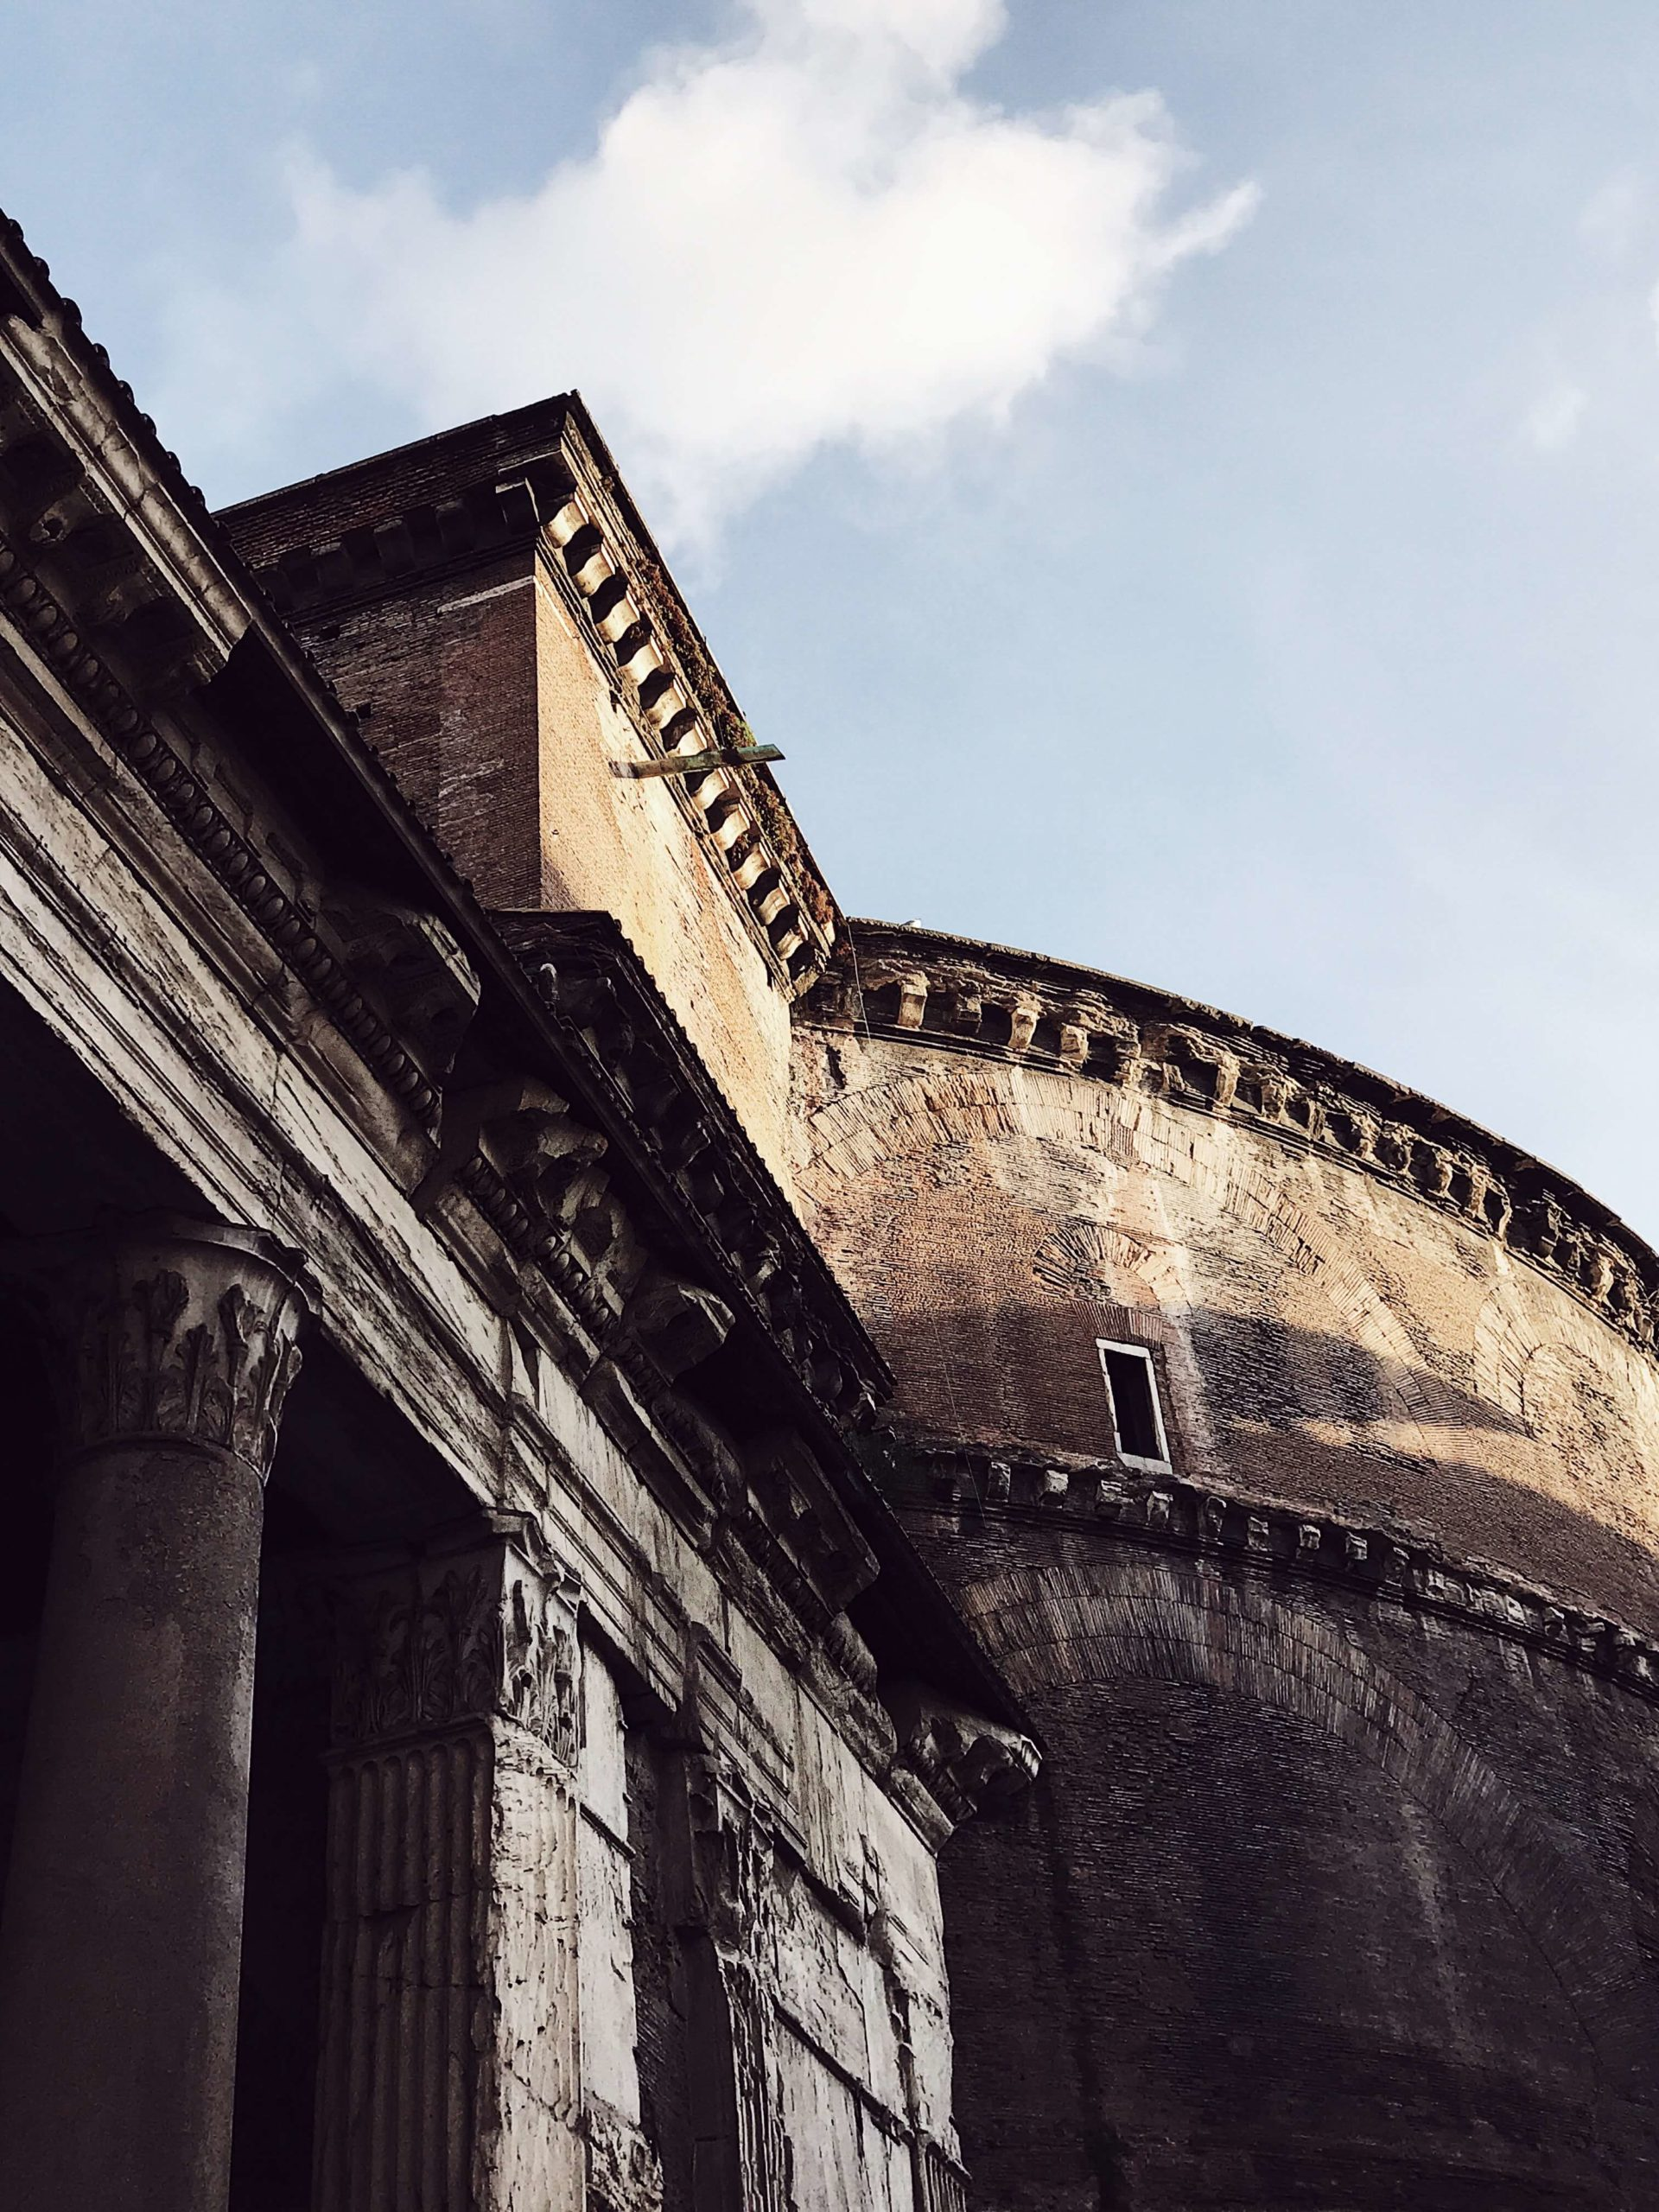 Rome in pictures: the pantheon's dome